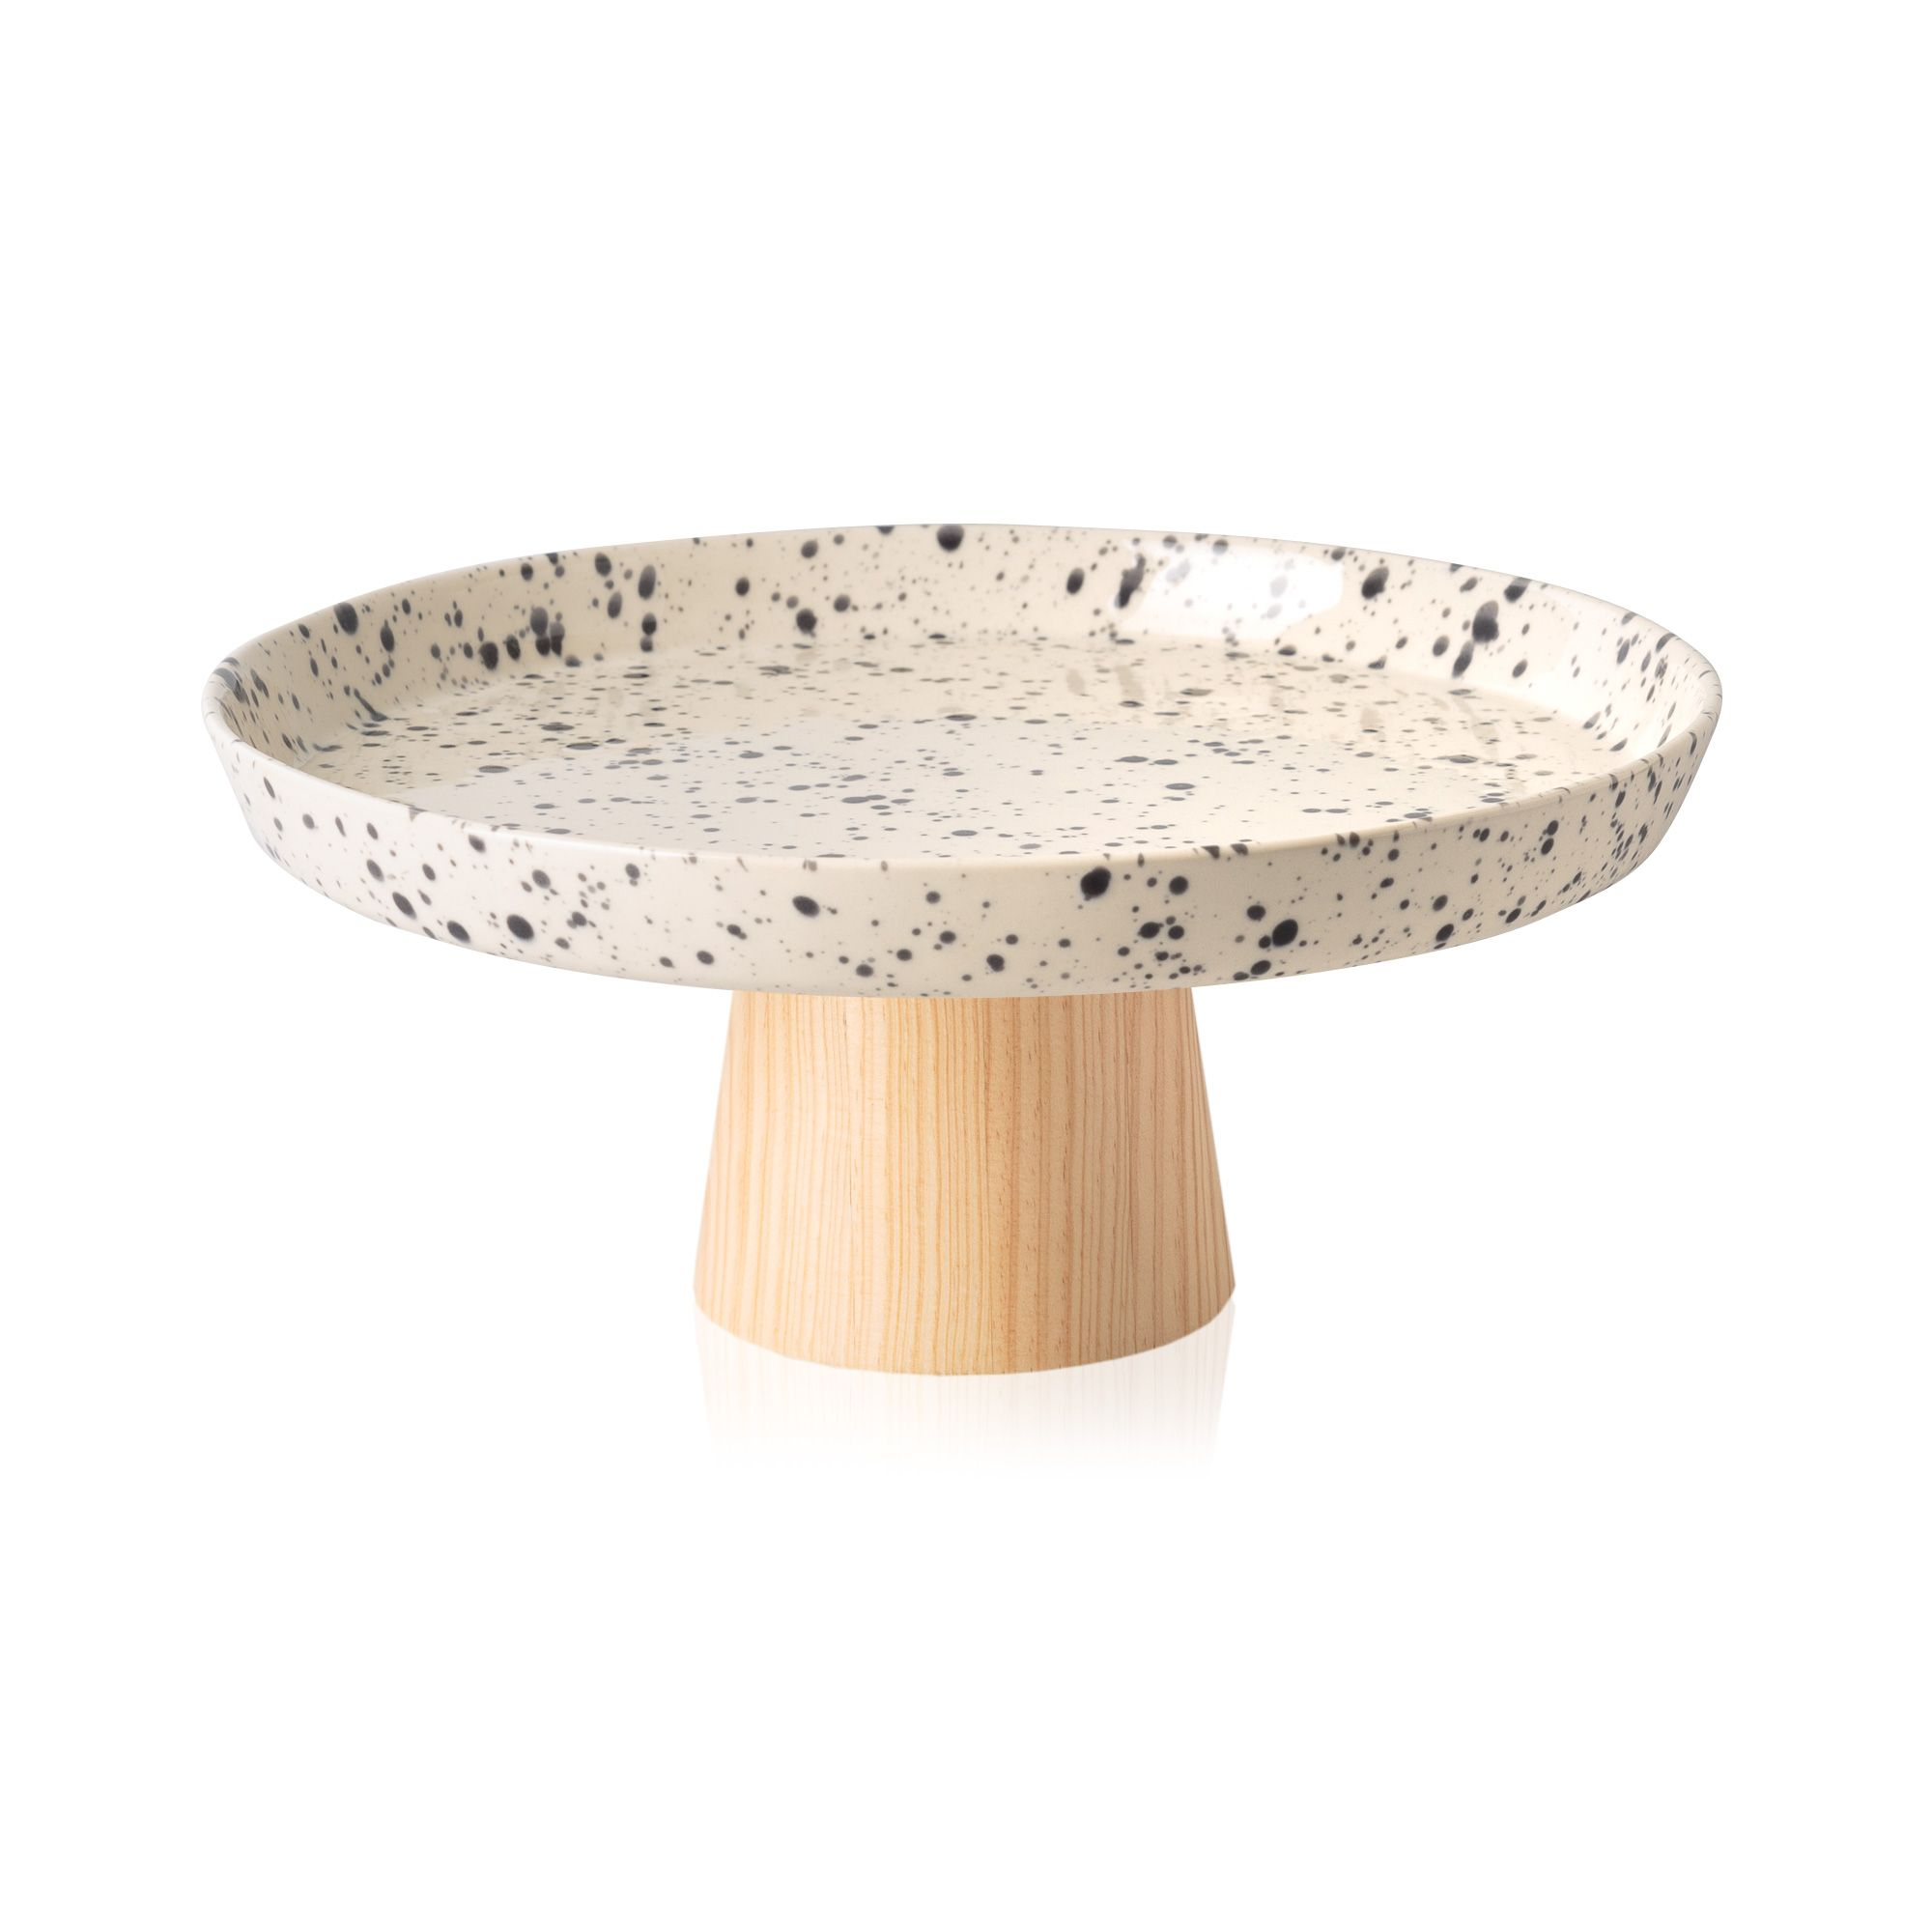 Buy the Ines Cake Stand at Oliver Bonas. Enjoy free UK standard delivery for orders over £50.